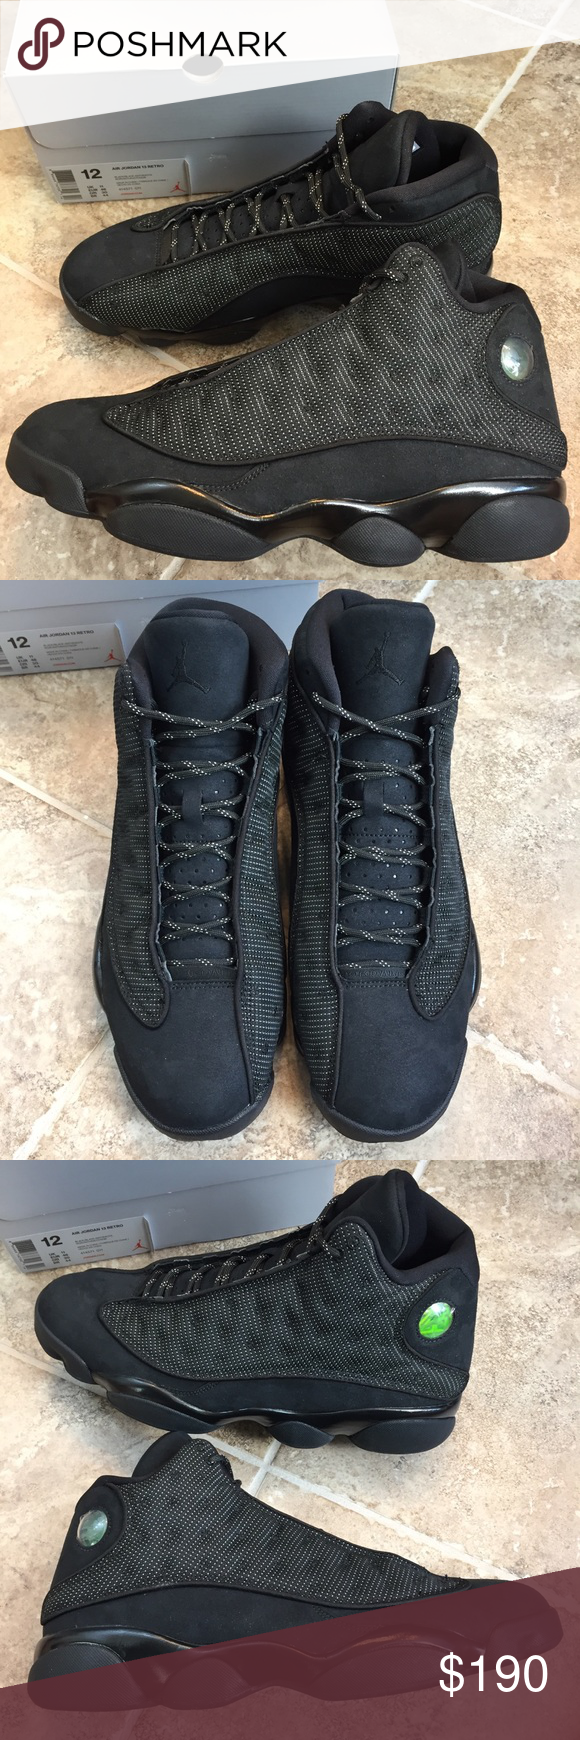 """f9c339bfac1 Jordan Retro 13 """"Black Cat"""" Brand new in box. These shoes have small ..."""